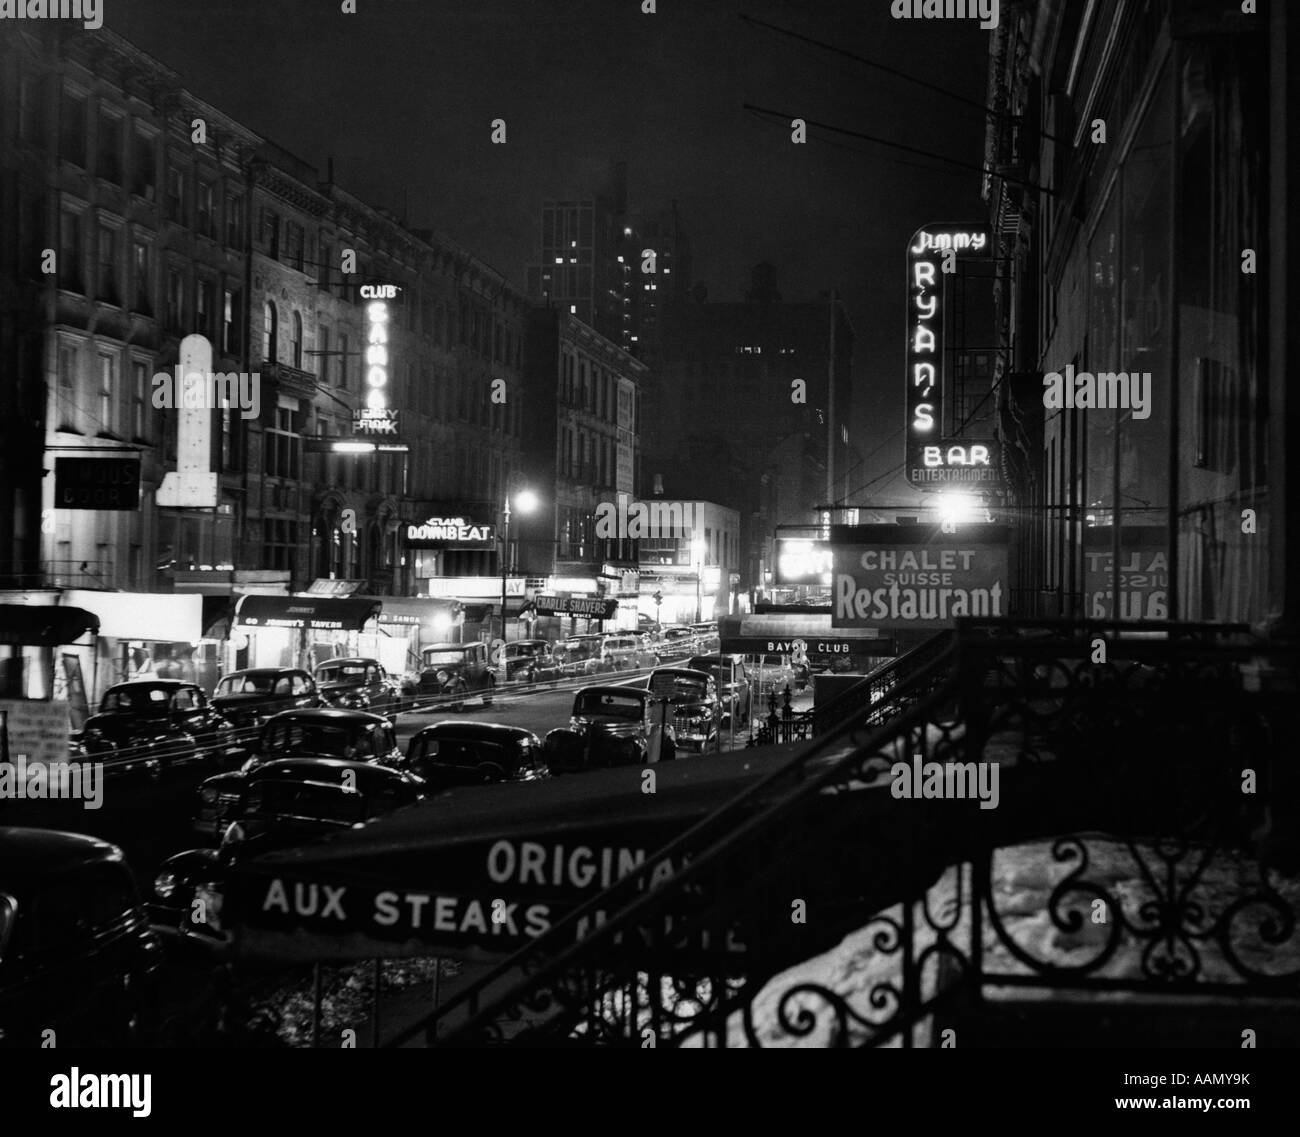 1940s NIGHT STREET SCENE NEW YORK CITY WEST 52nd STREET LIGHTS FROM NUMEROUS CLUBS AND NIGHTCLUBS - Stock Image